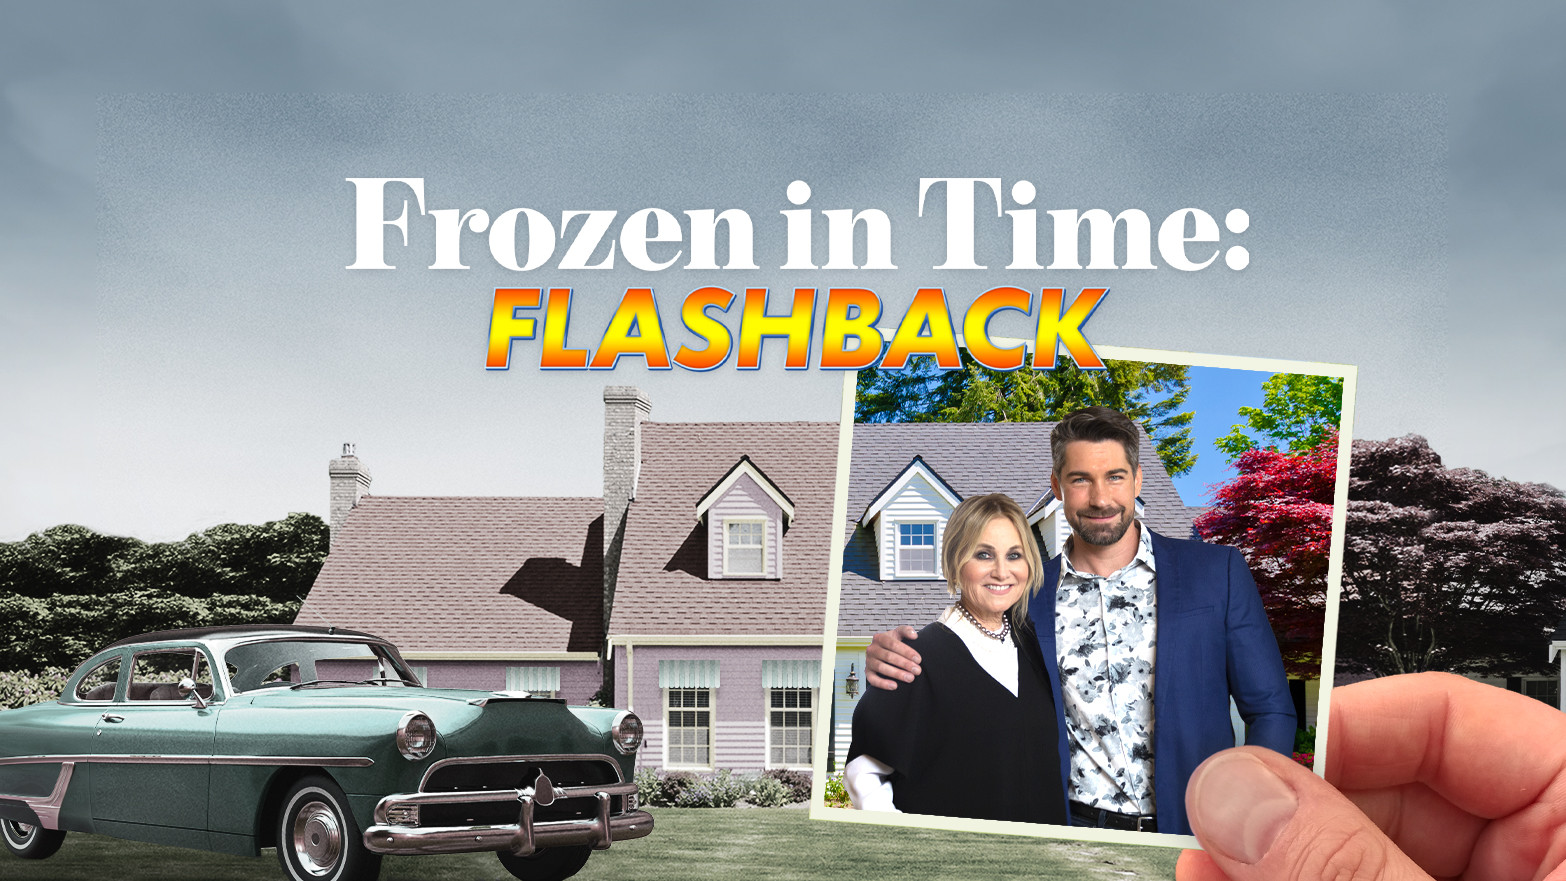 frozen in time flashback portfolio image